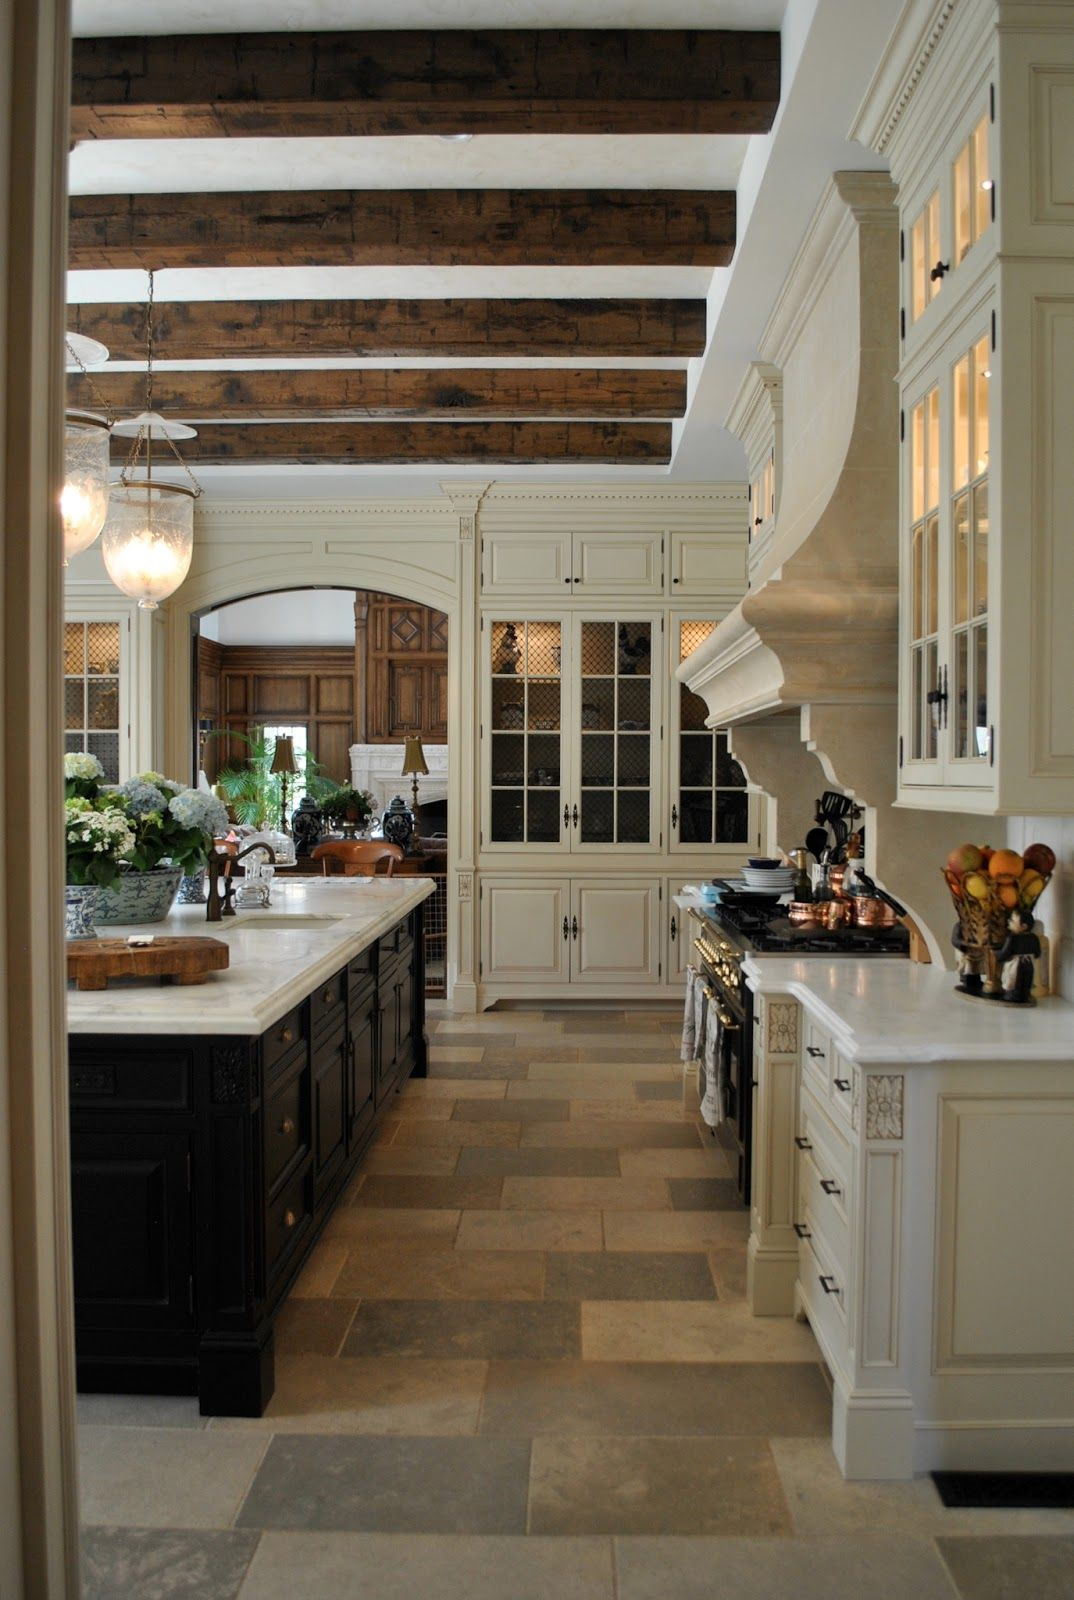 Kitchen In The Enchanted Home Blog By Tina With French Country